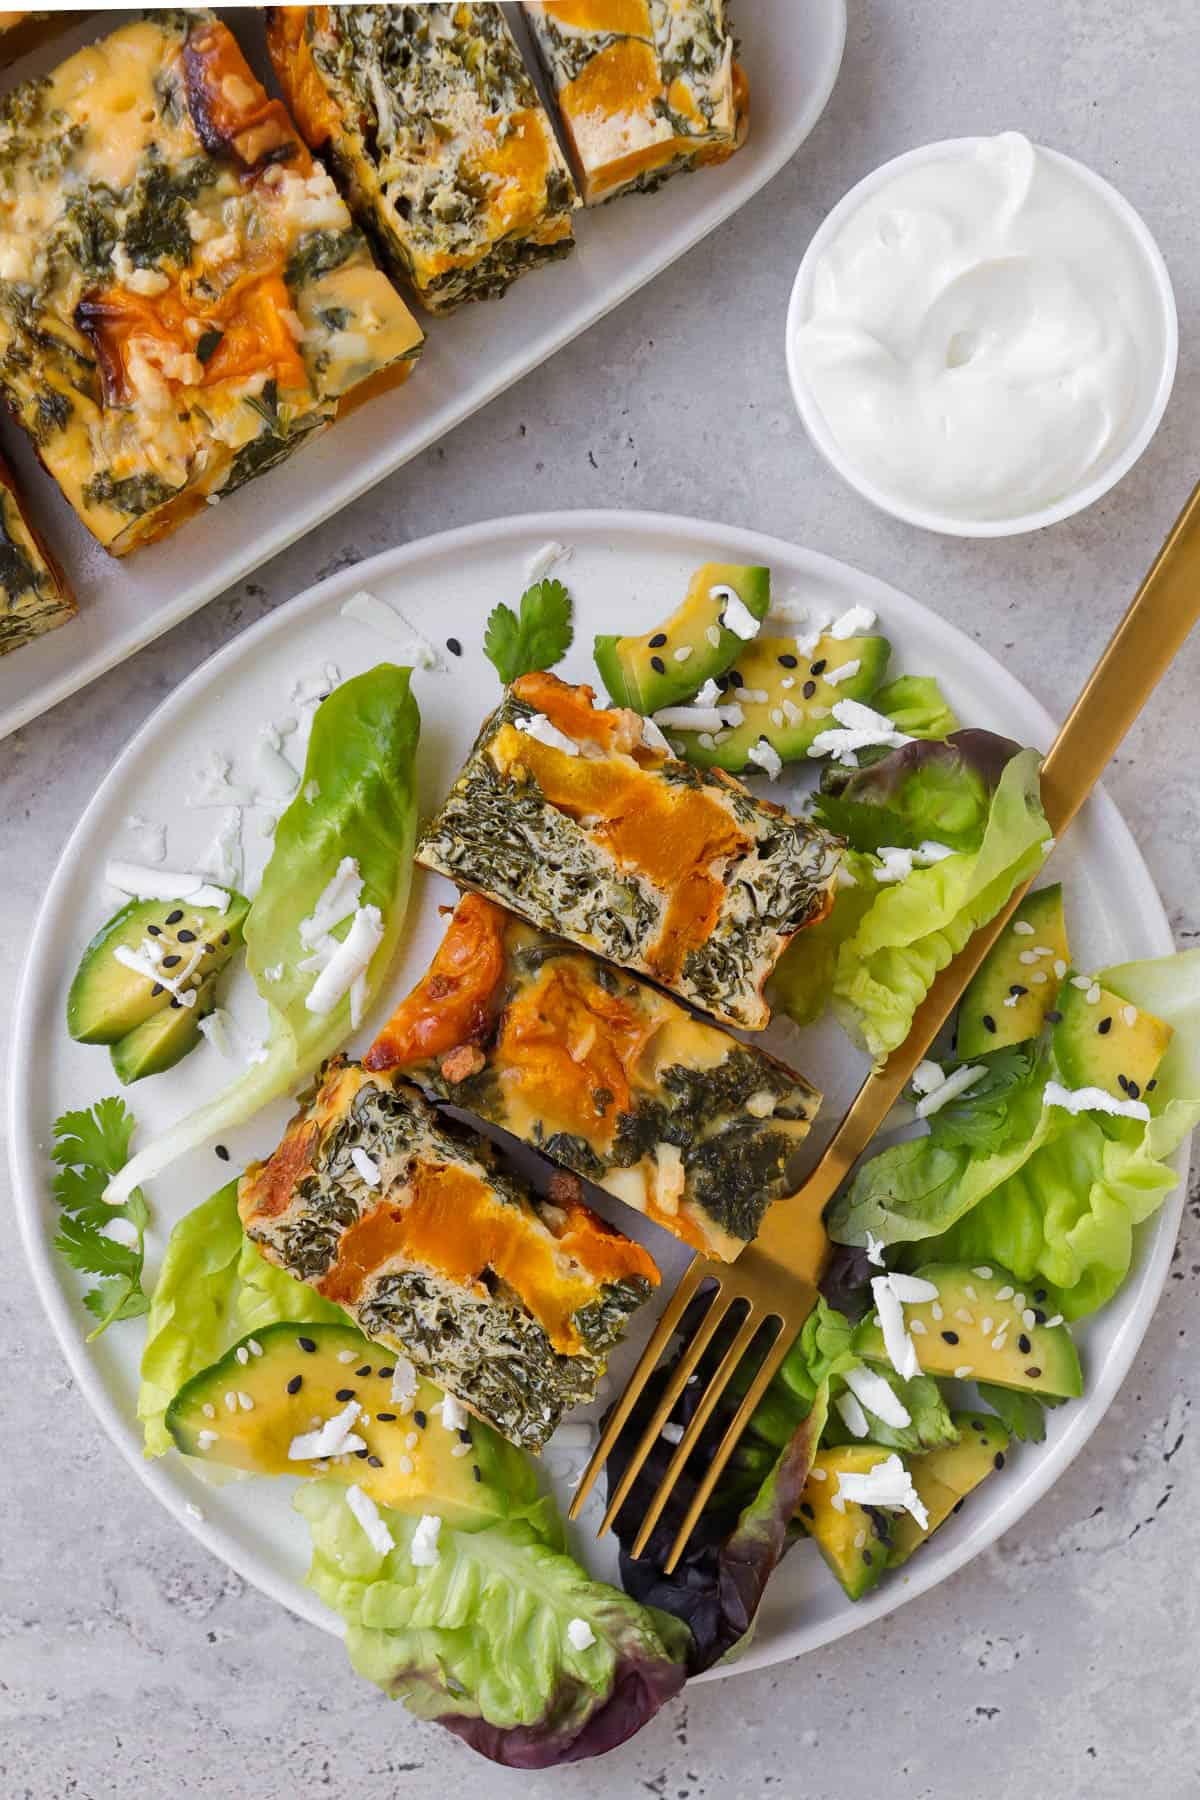 Sliced frittata on plate with lettuce, feta, avocado and gold fork.